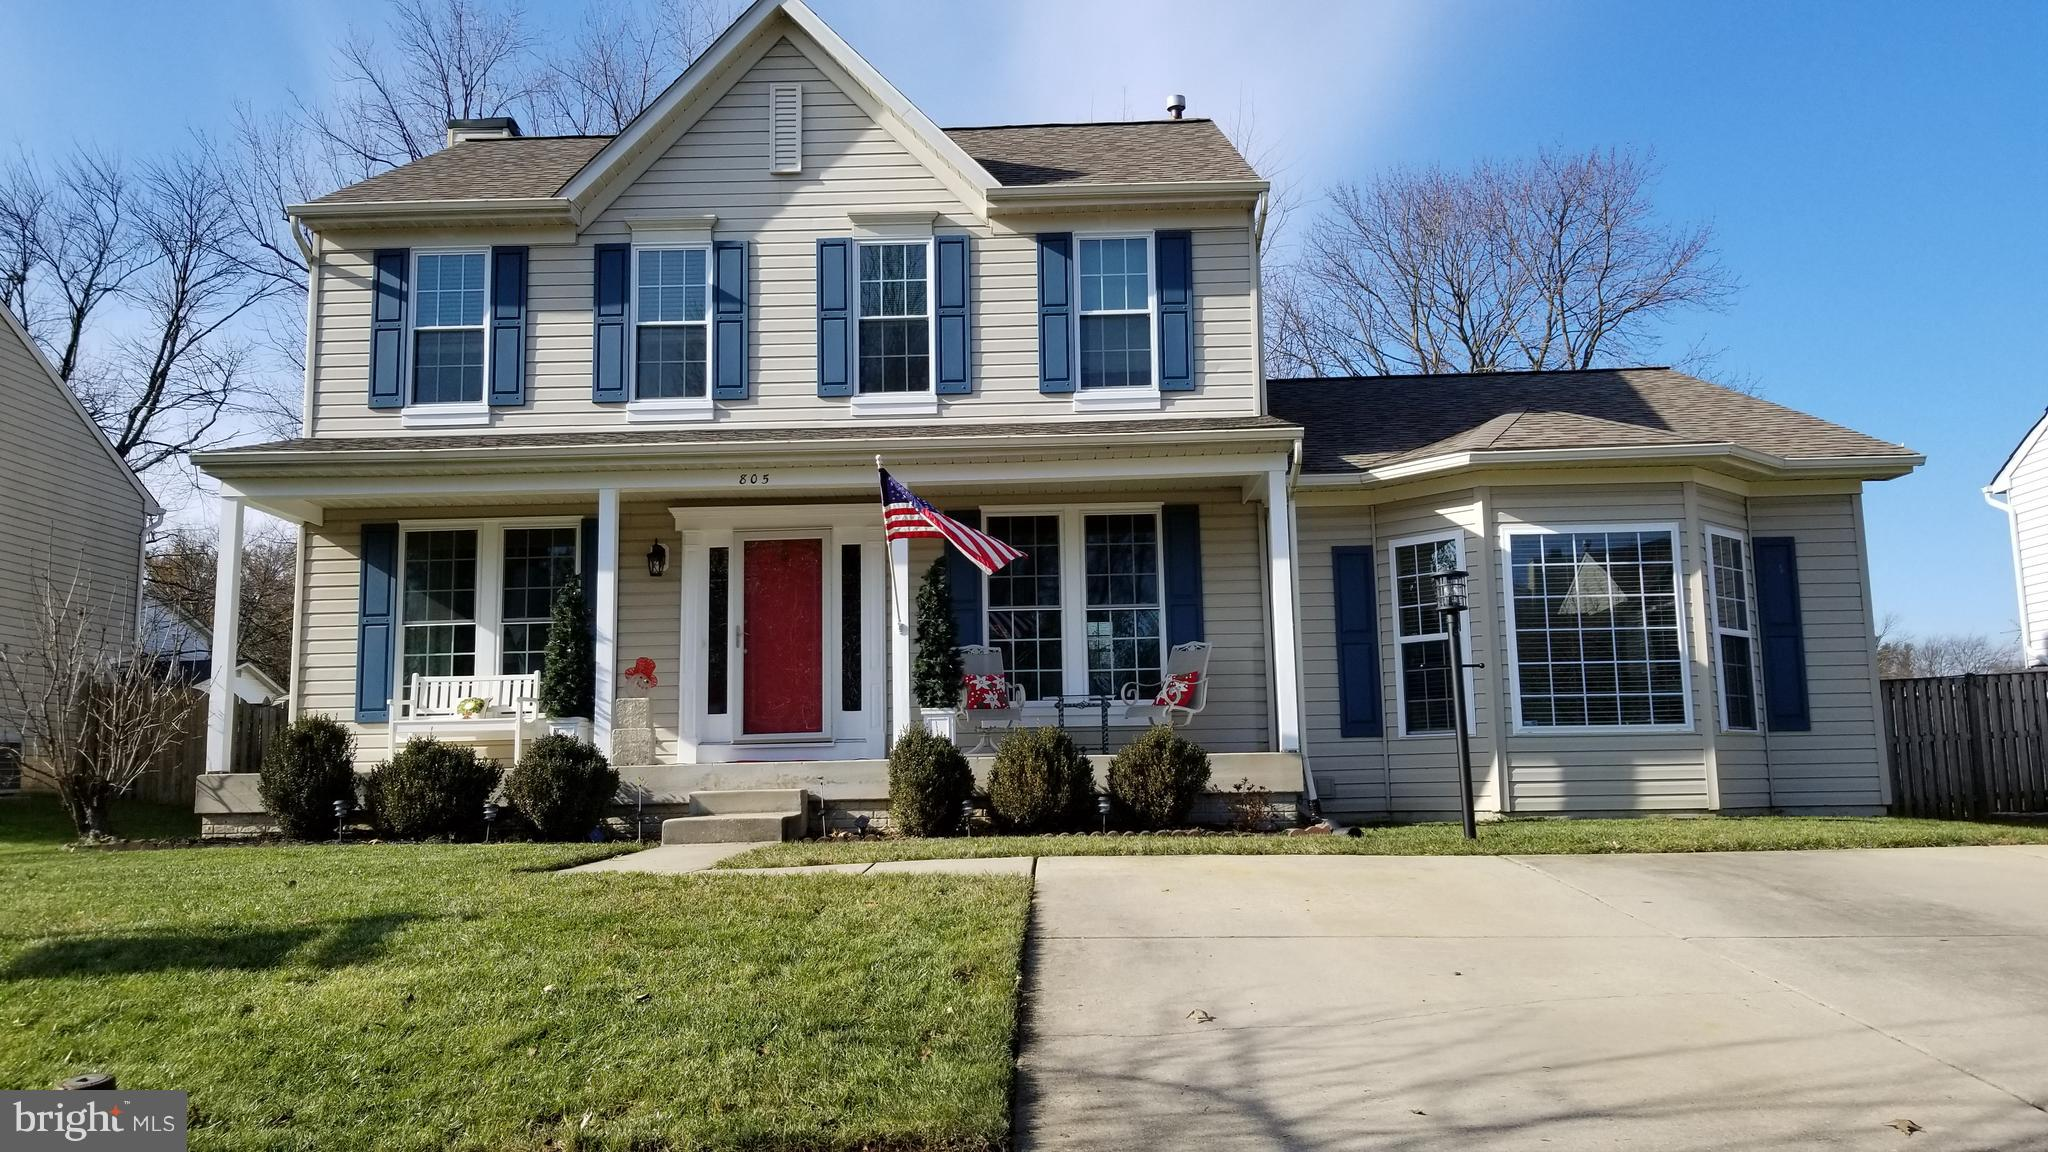 805 VACATION DRIVE, ODENTON, MD 21113